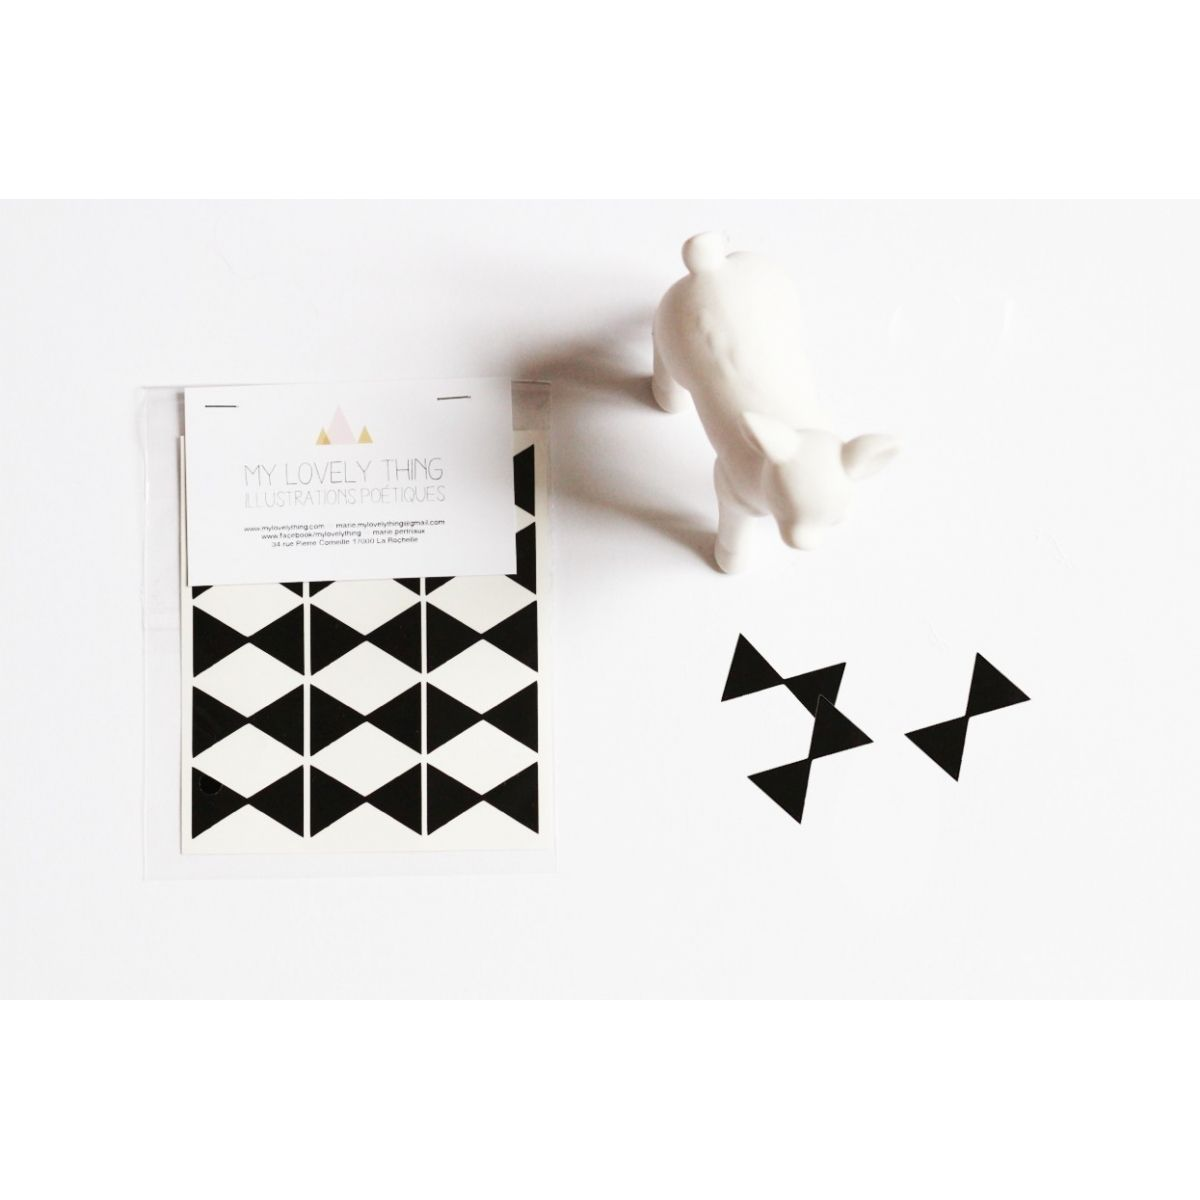 My Lovely Thing Stickers Bow Tie black